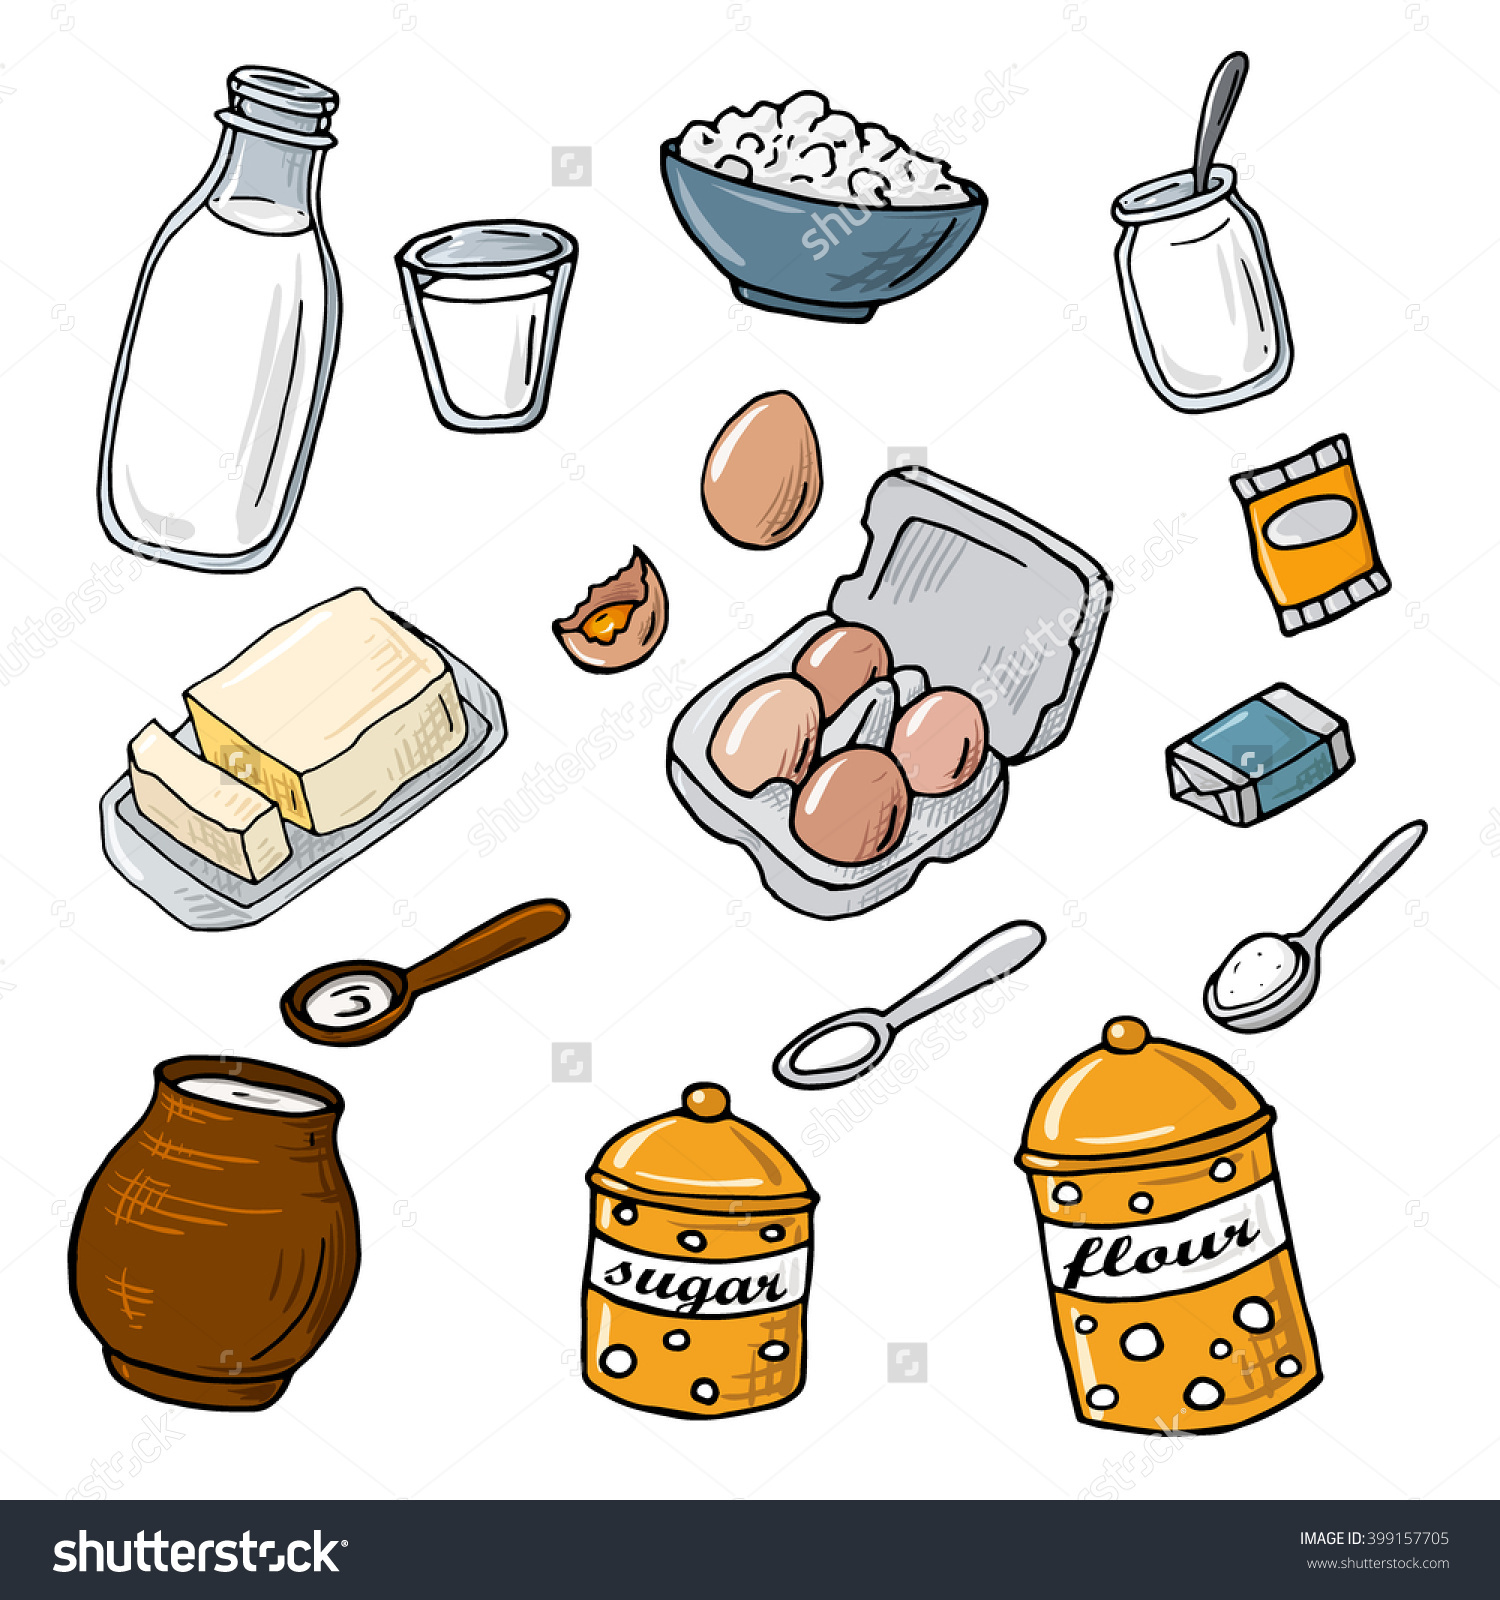 Flour clipart ingredient Eggs Flour Clipart Clipart Eggs